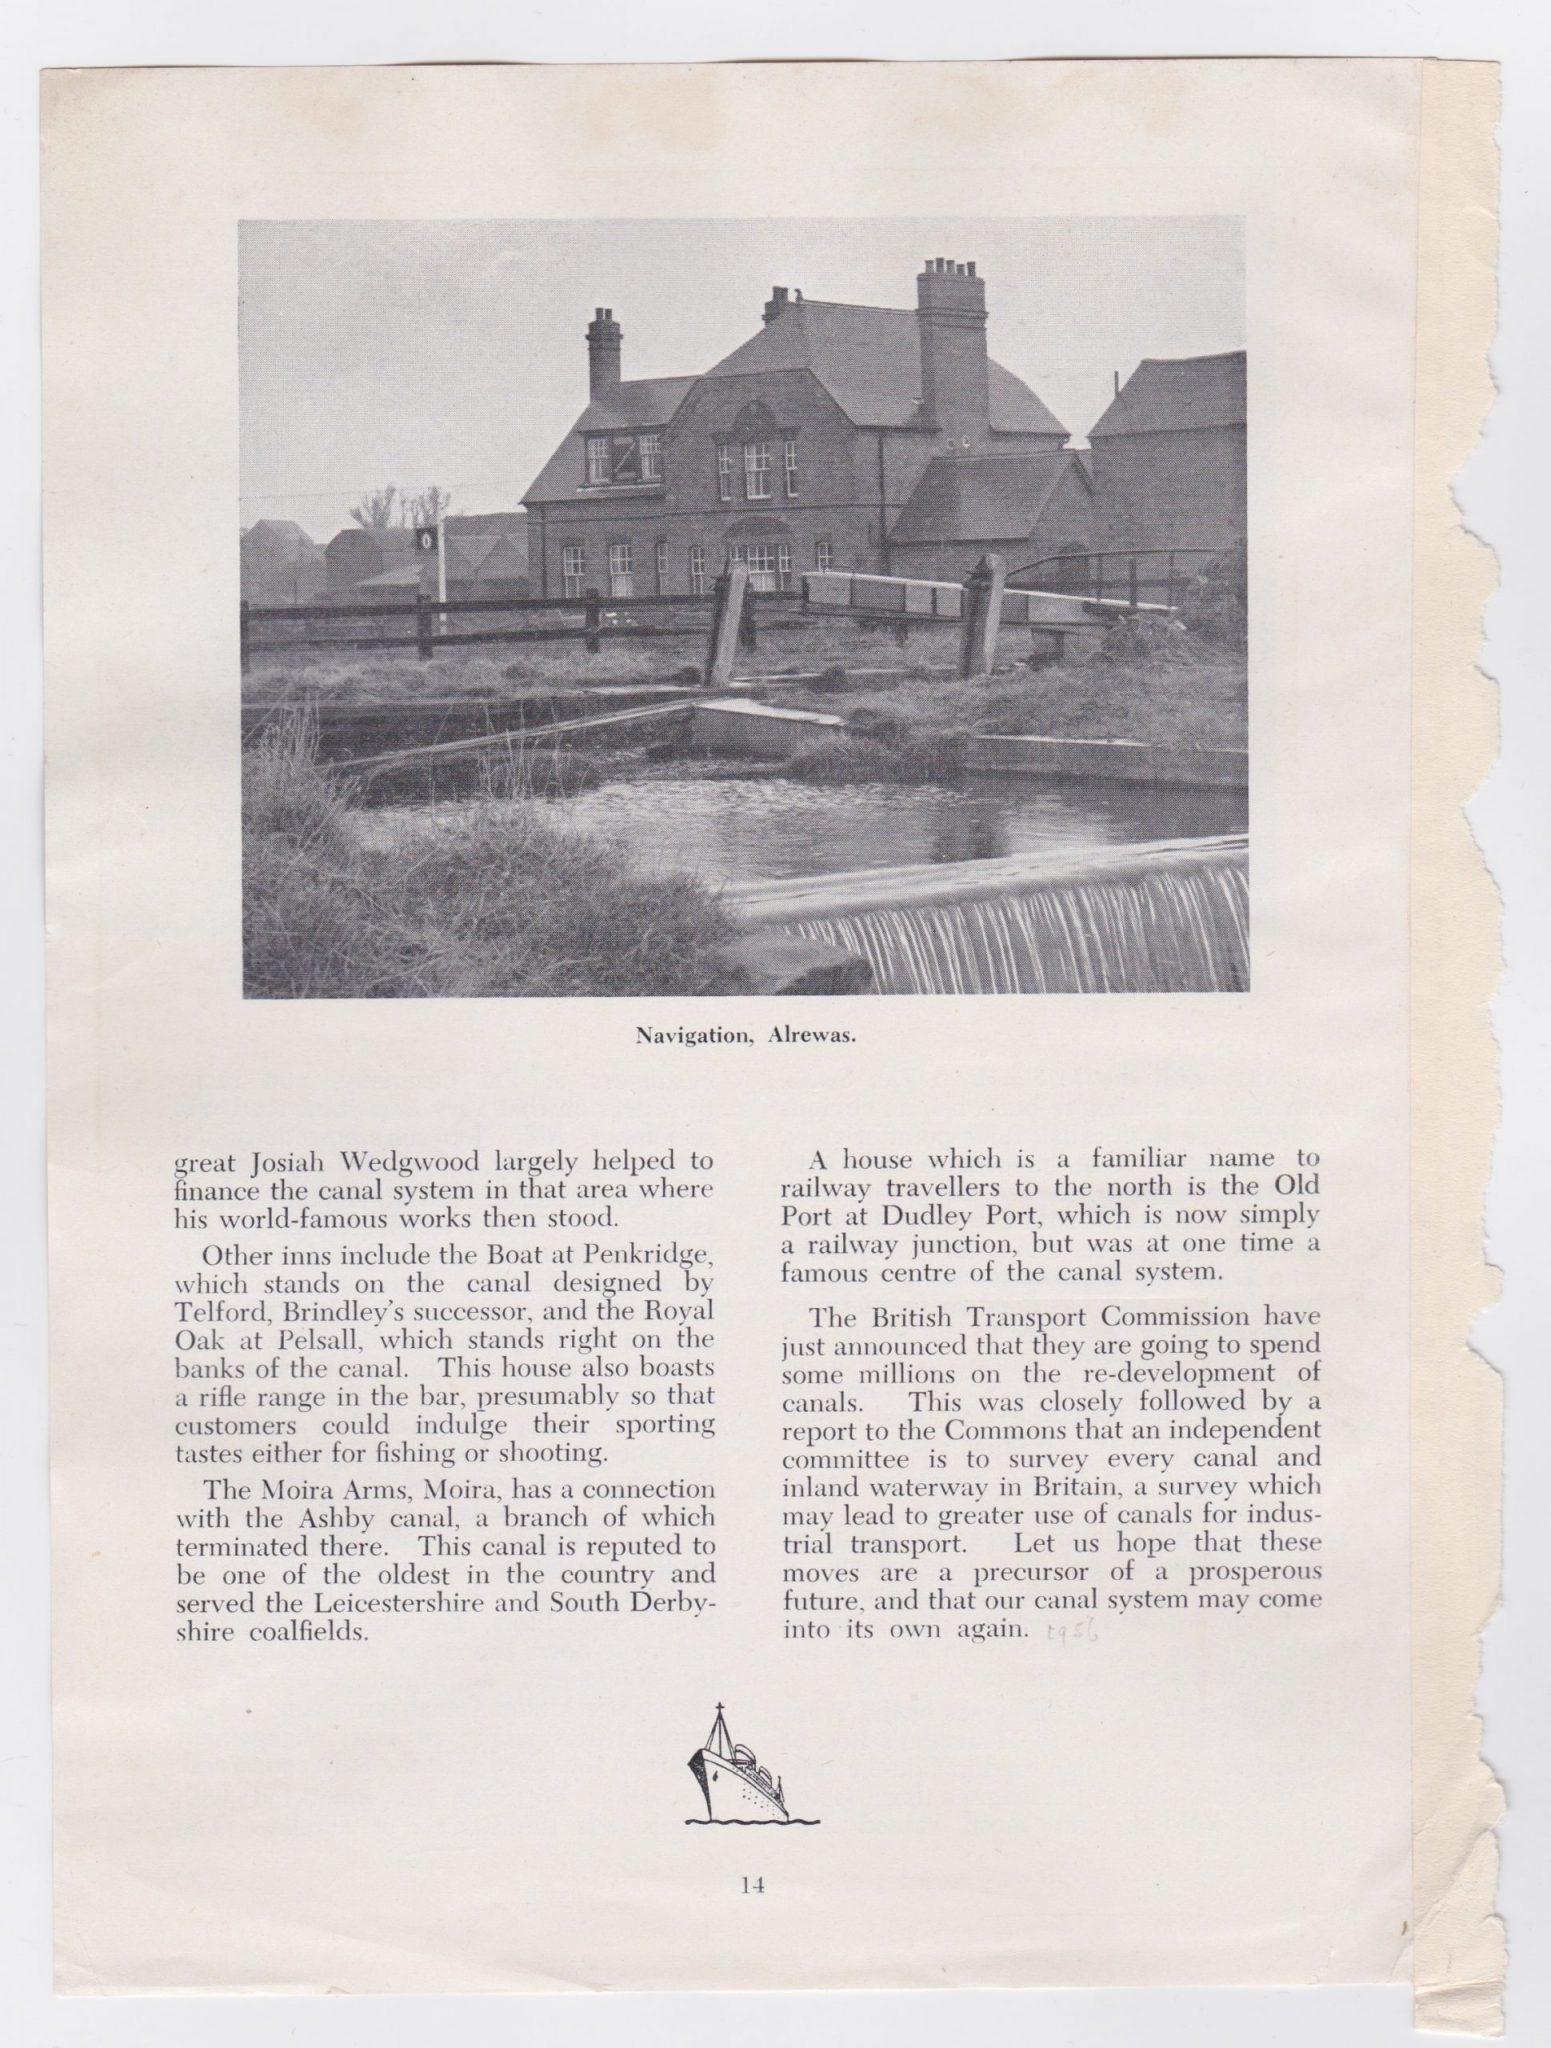 third part of article on canal inns